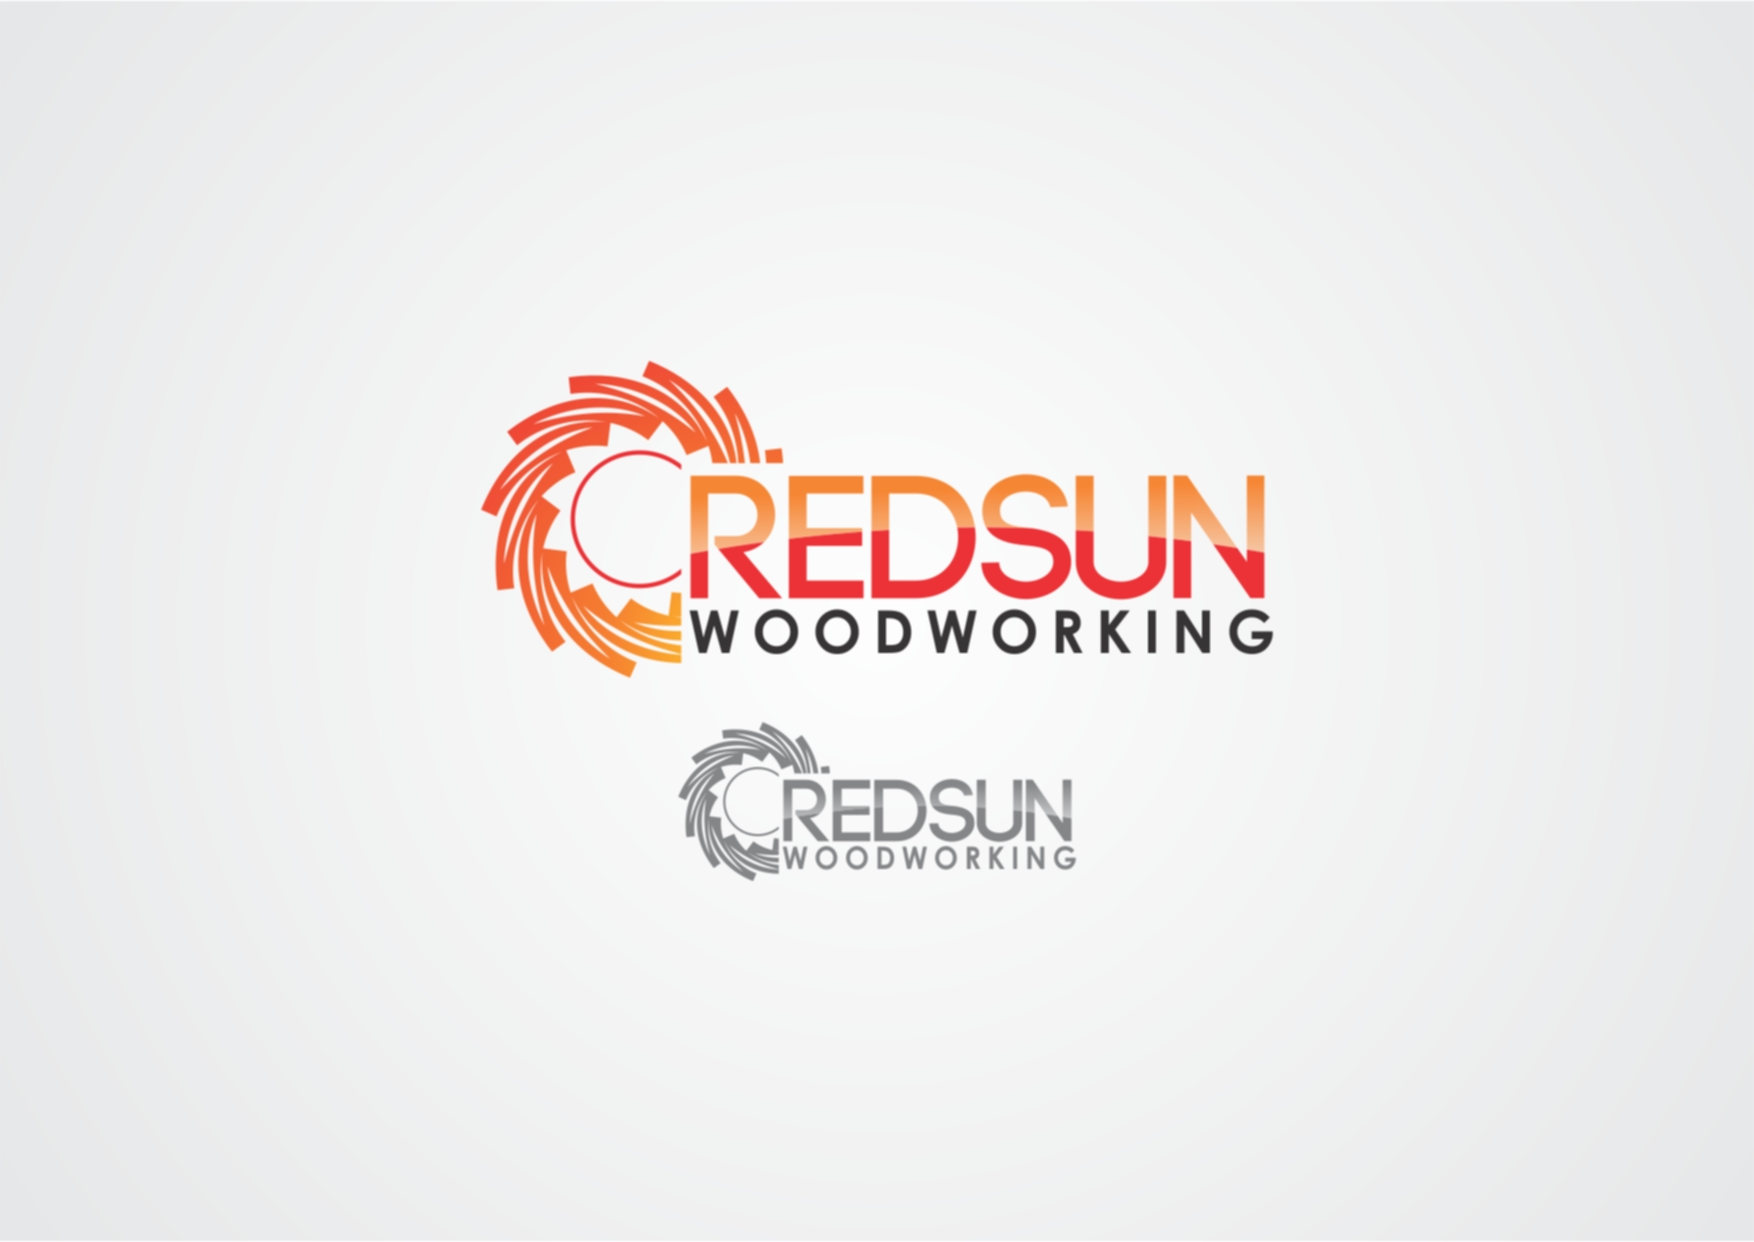 Logo Design by Private User - Entry No. 66 in the Logo Design Contest Red Sun Woodworking Logo Design.